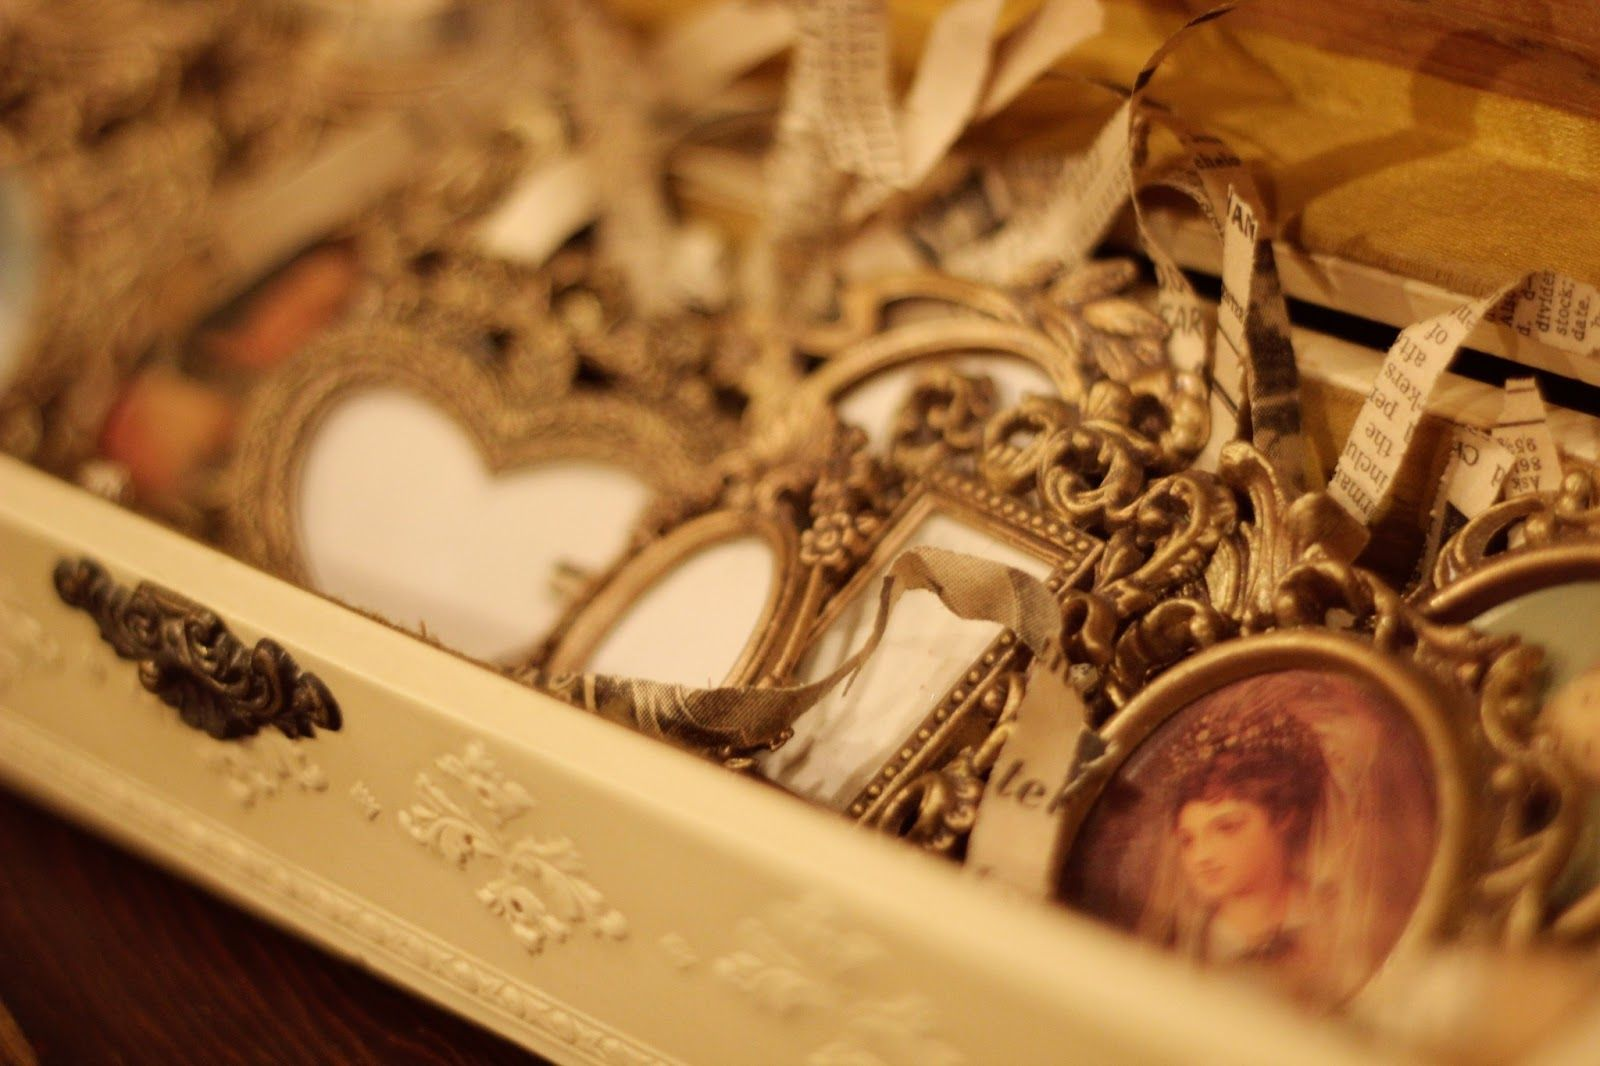 Window display ideas for jewellery  display small items in old jewelry boxes  booth  pinterest